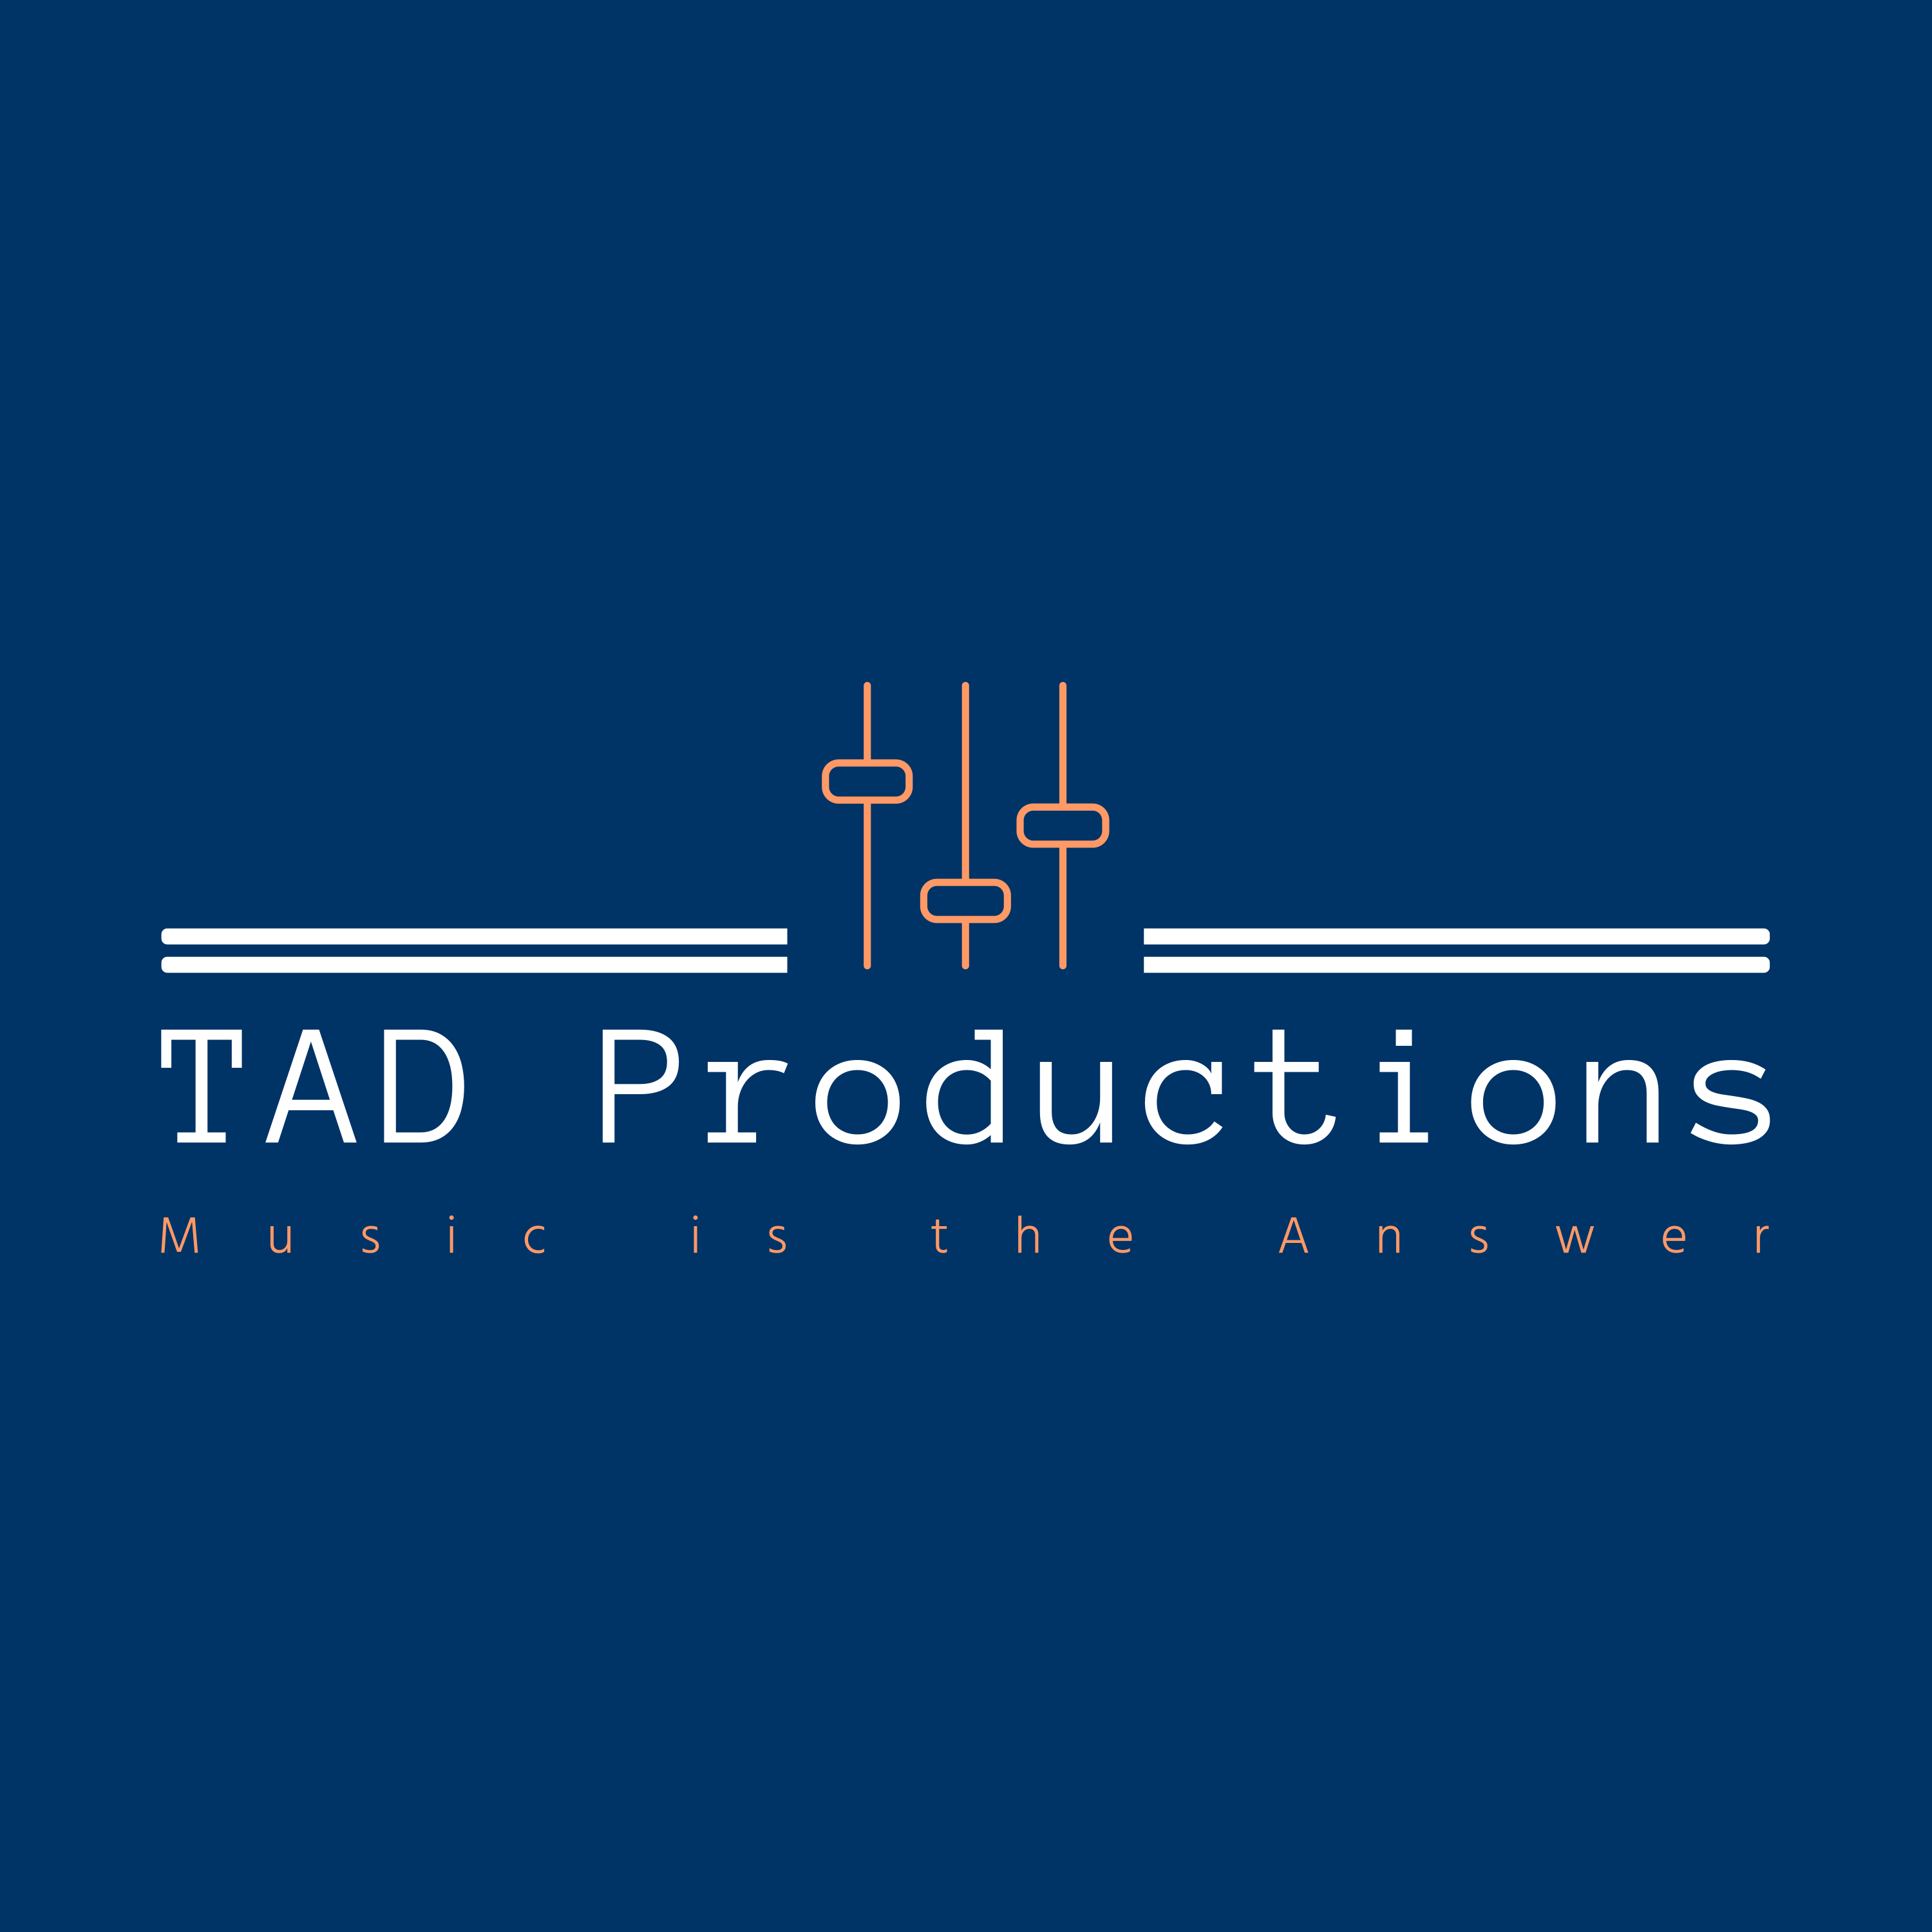 TAD Productions